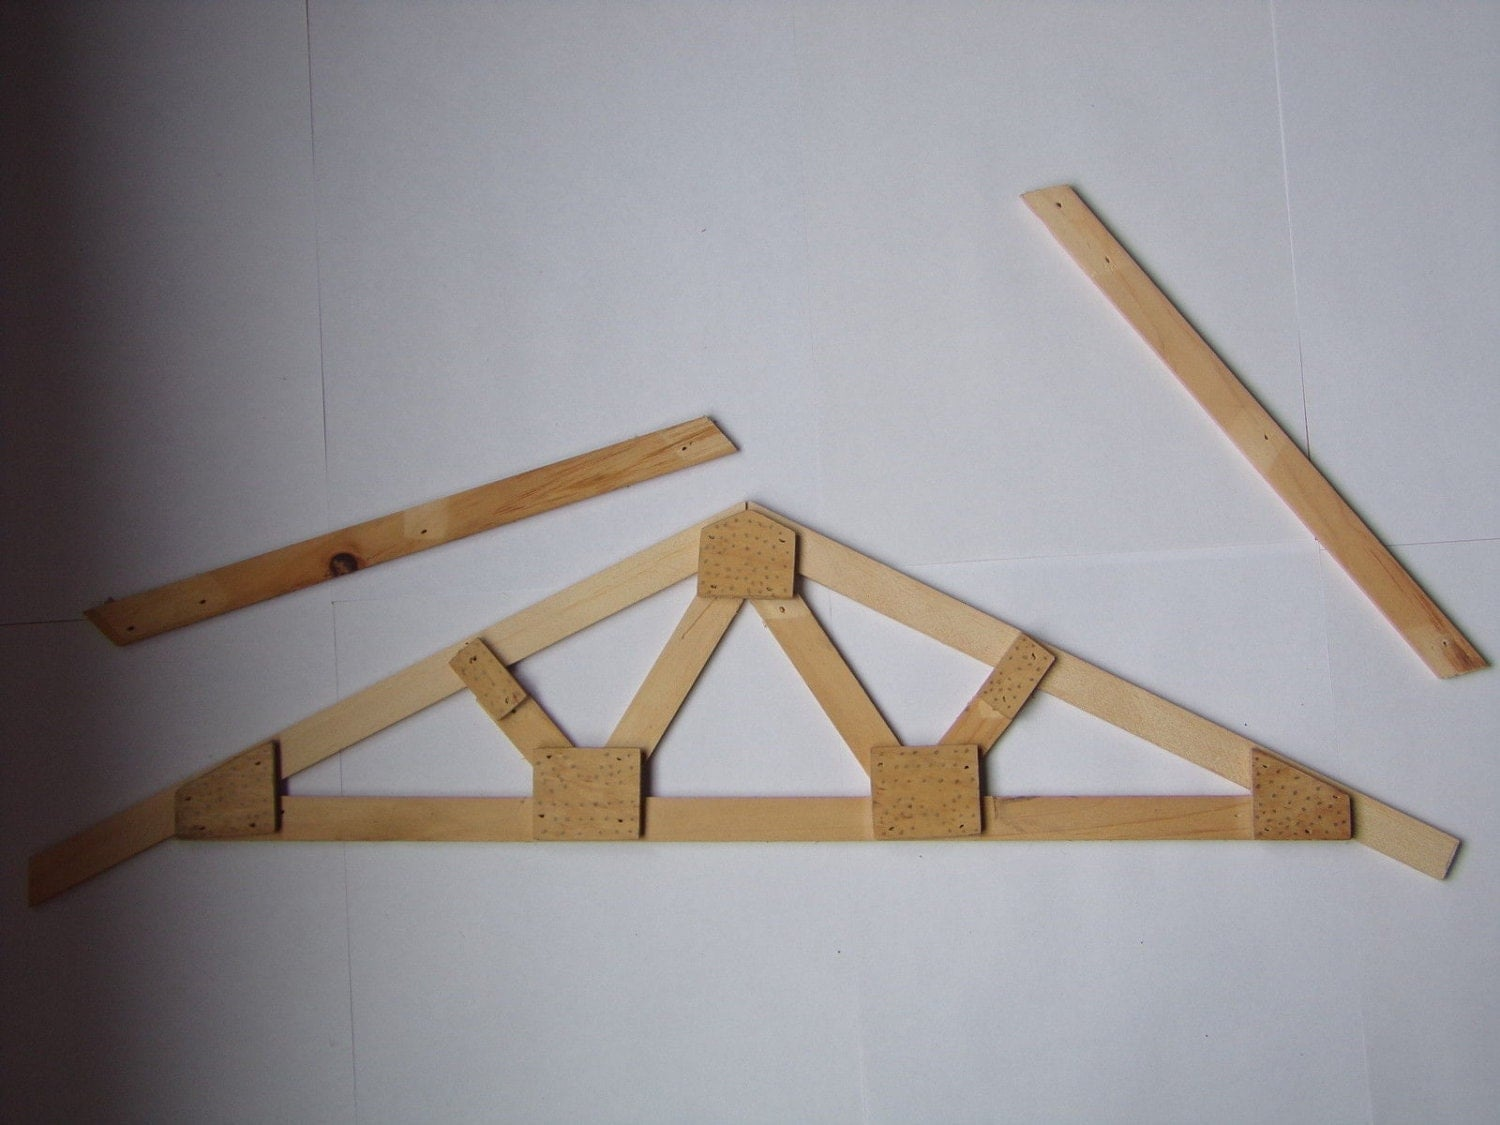 Roof truss plans how to build make your own by howtobuildplans Build your own cupola